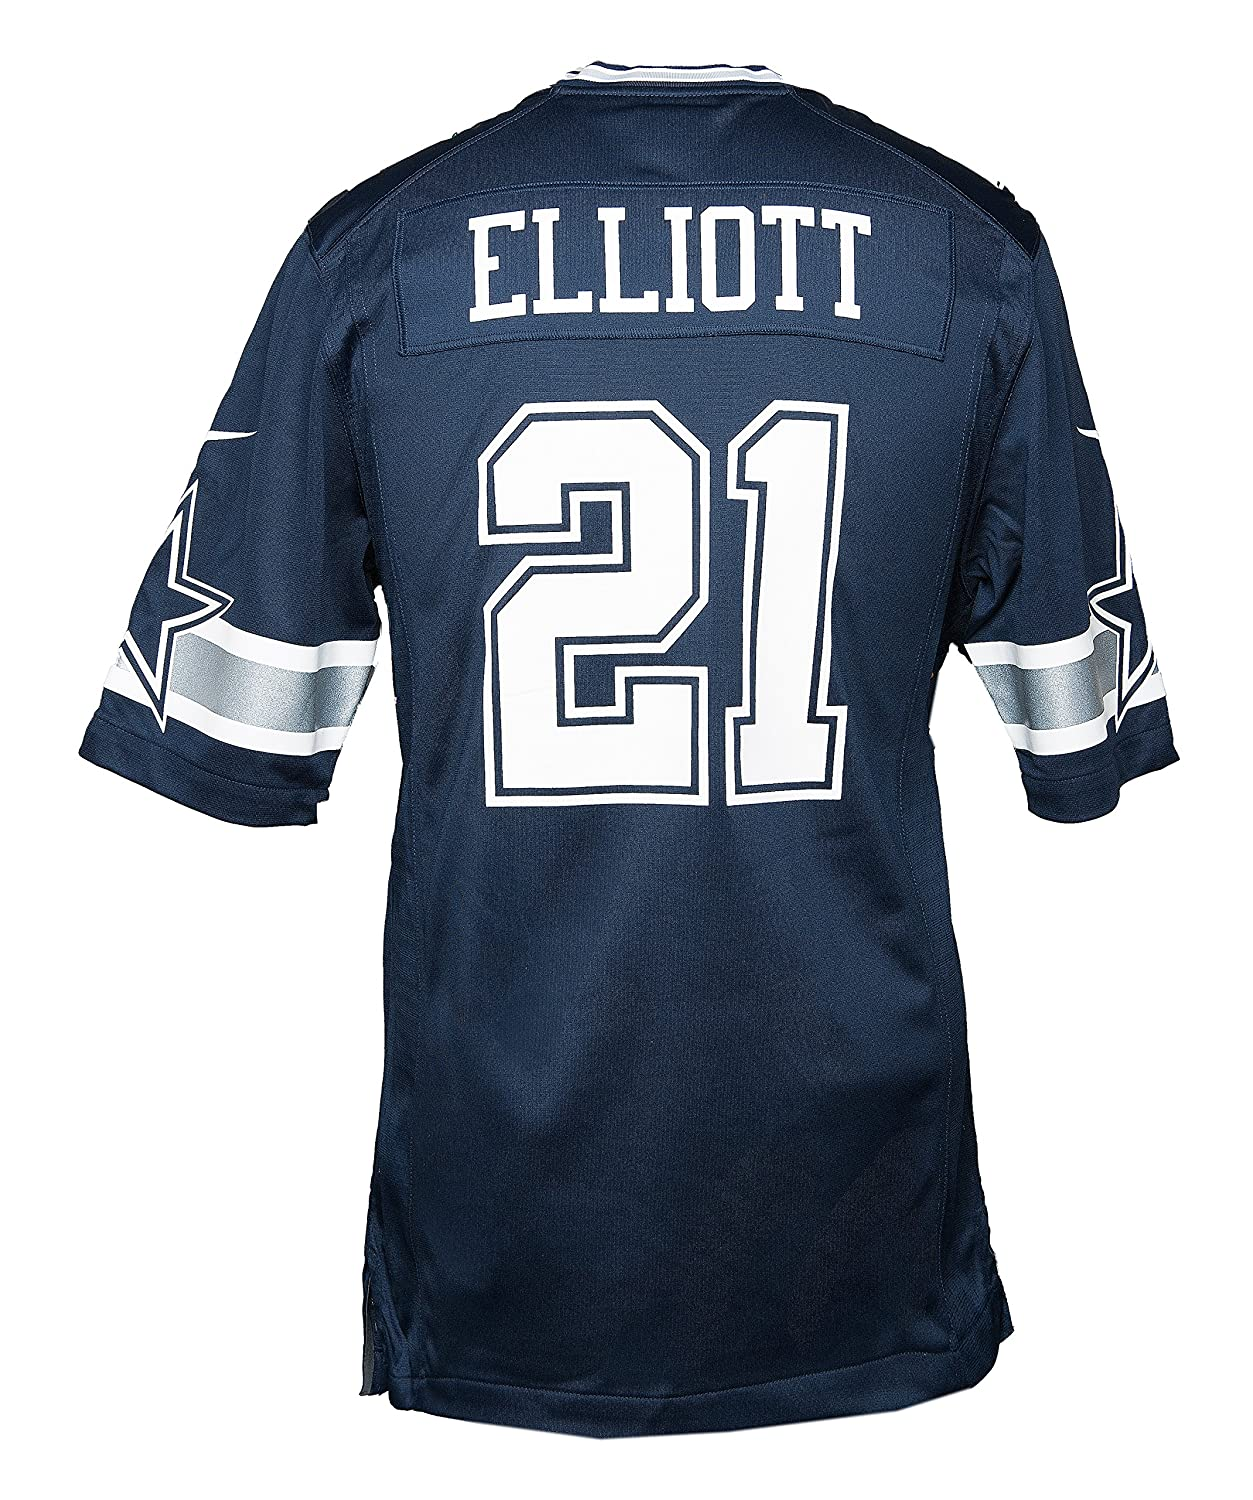 09ccb96149b Amazon.com : Dallas Cowboys Ezekiel Elliott Nike Navy Game Replica Jersey :  Clothing